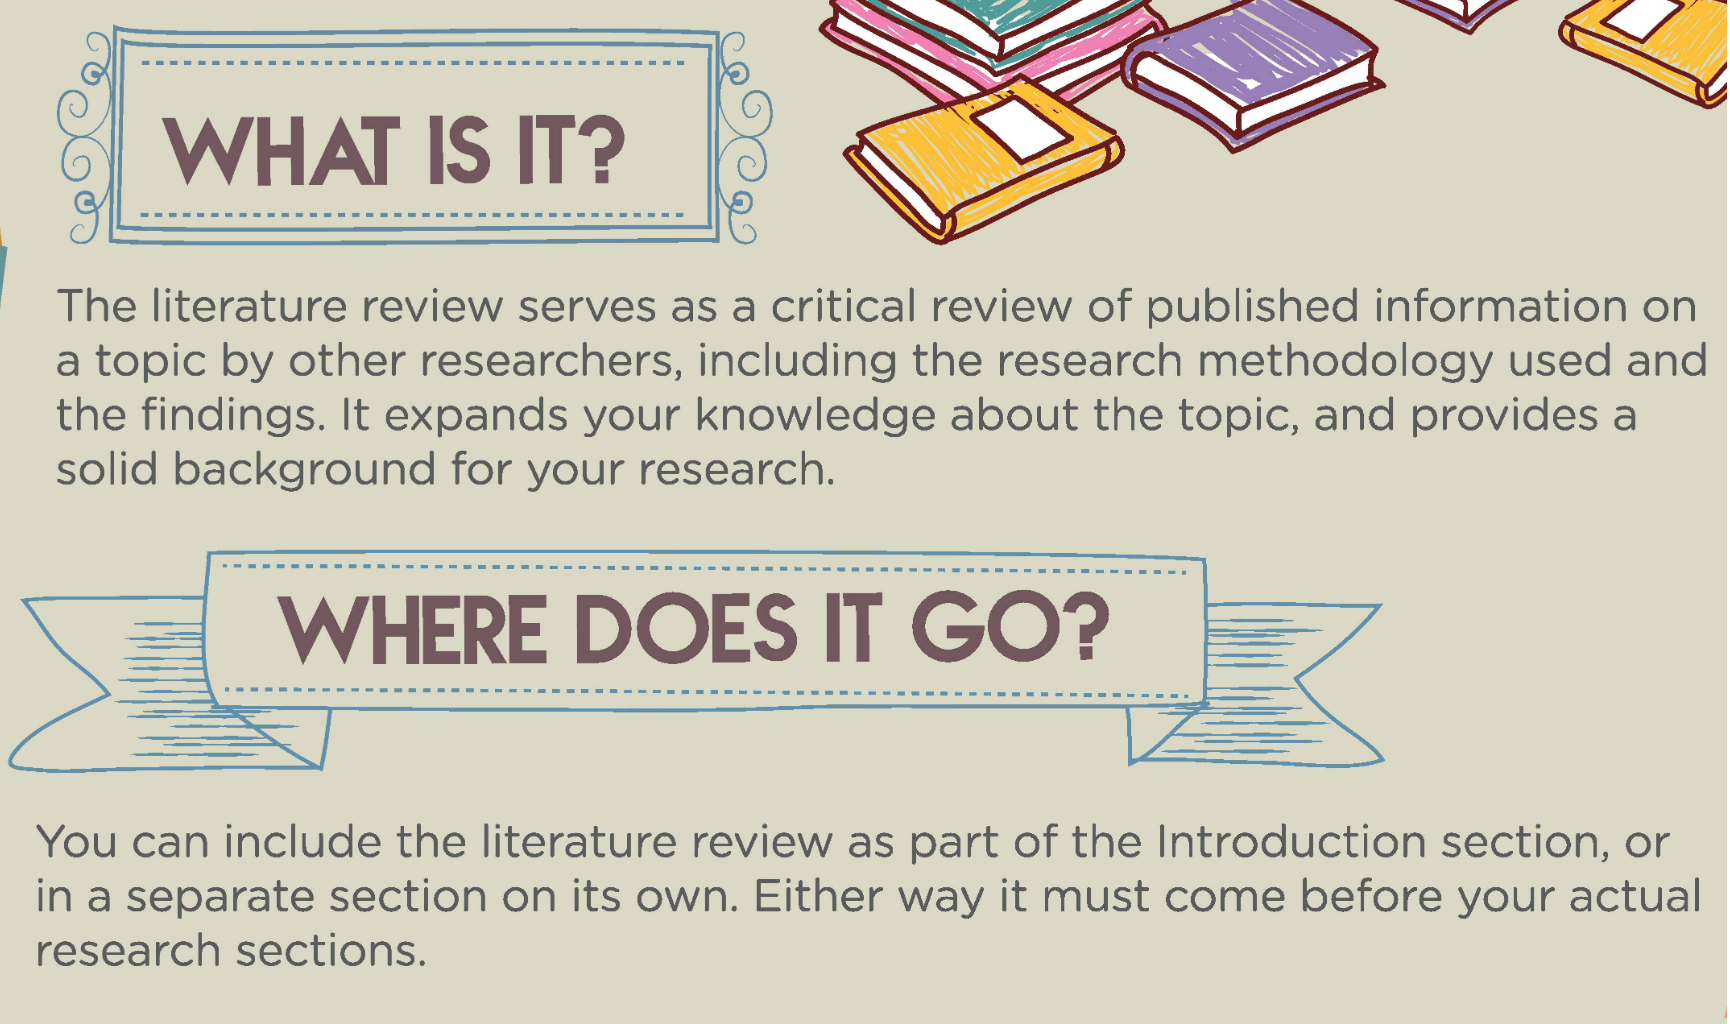 apa format literature review citation Why cite citing your sources is important because: giving credit (attribution) to original authors helps you avoid plagiarizing citations allow your readers to find your sources citations add credibility to your arguments your professors expect it as part of standard academic discourse what is a citation.